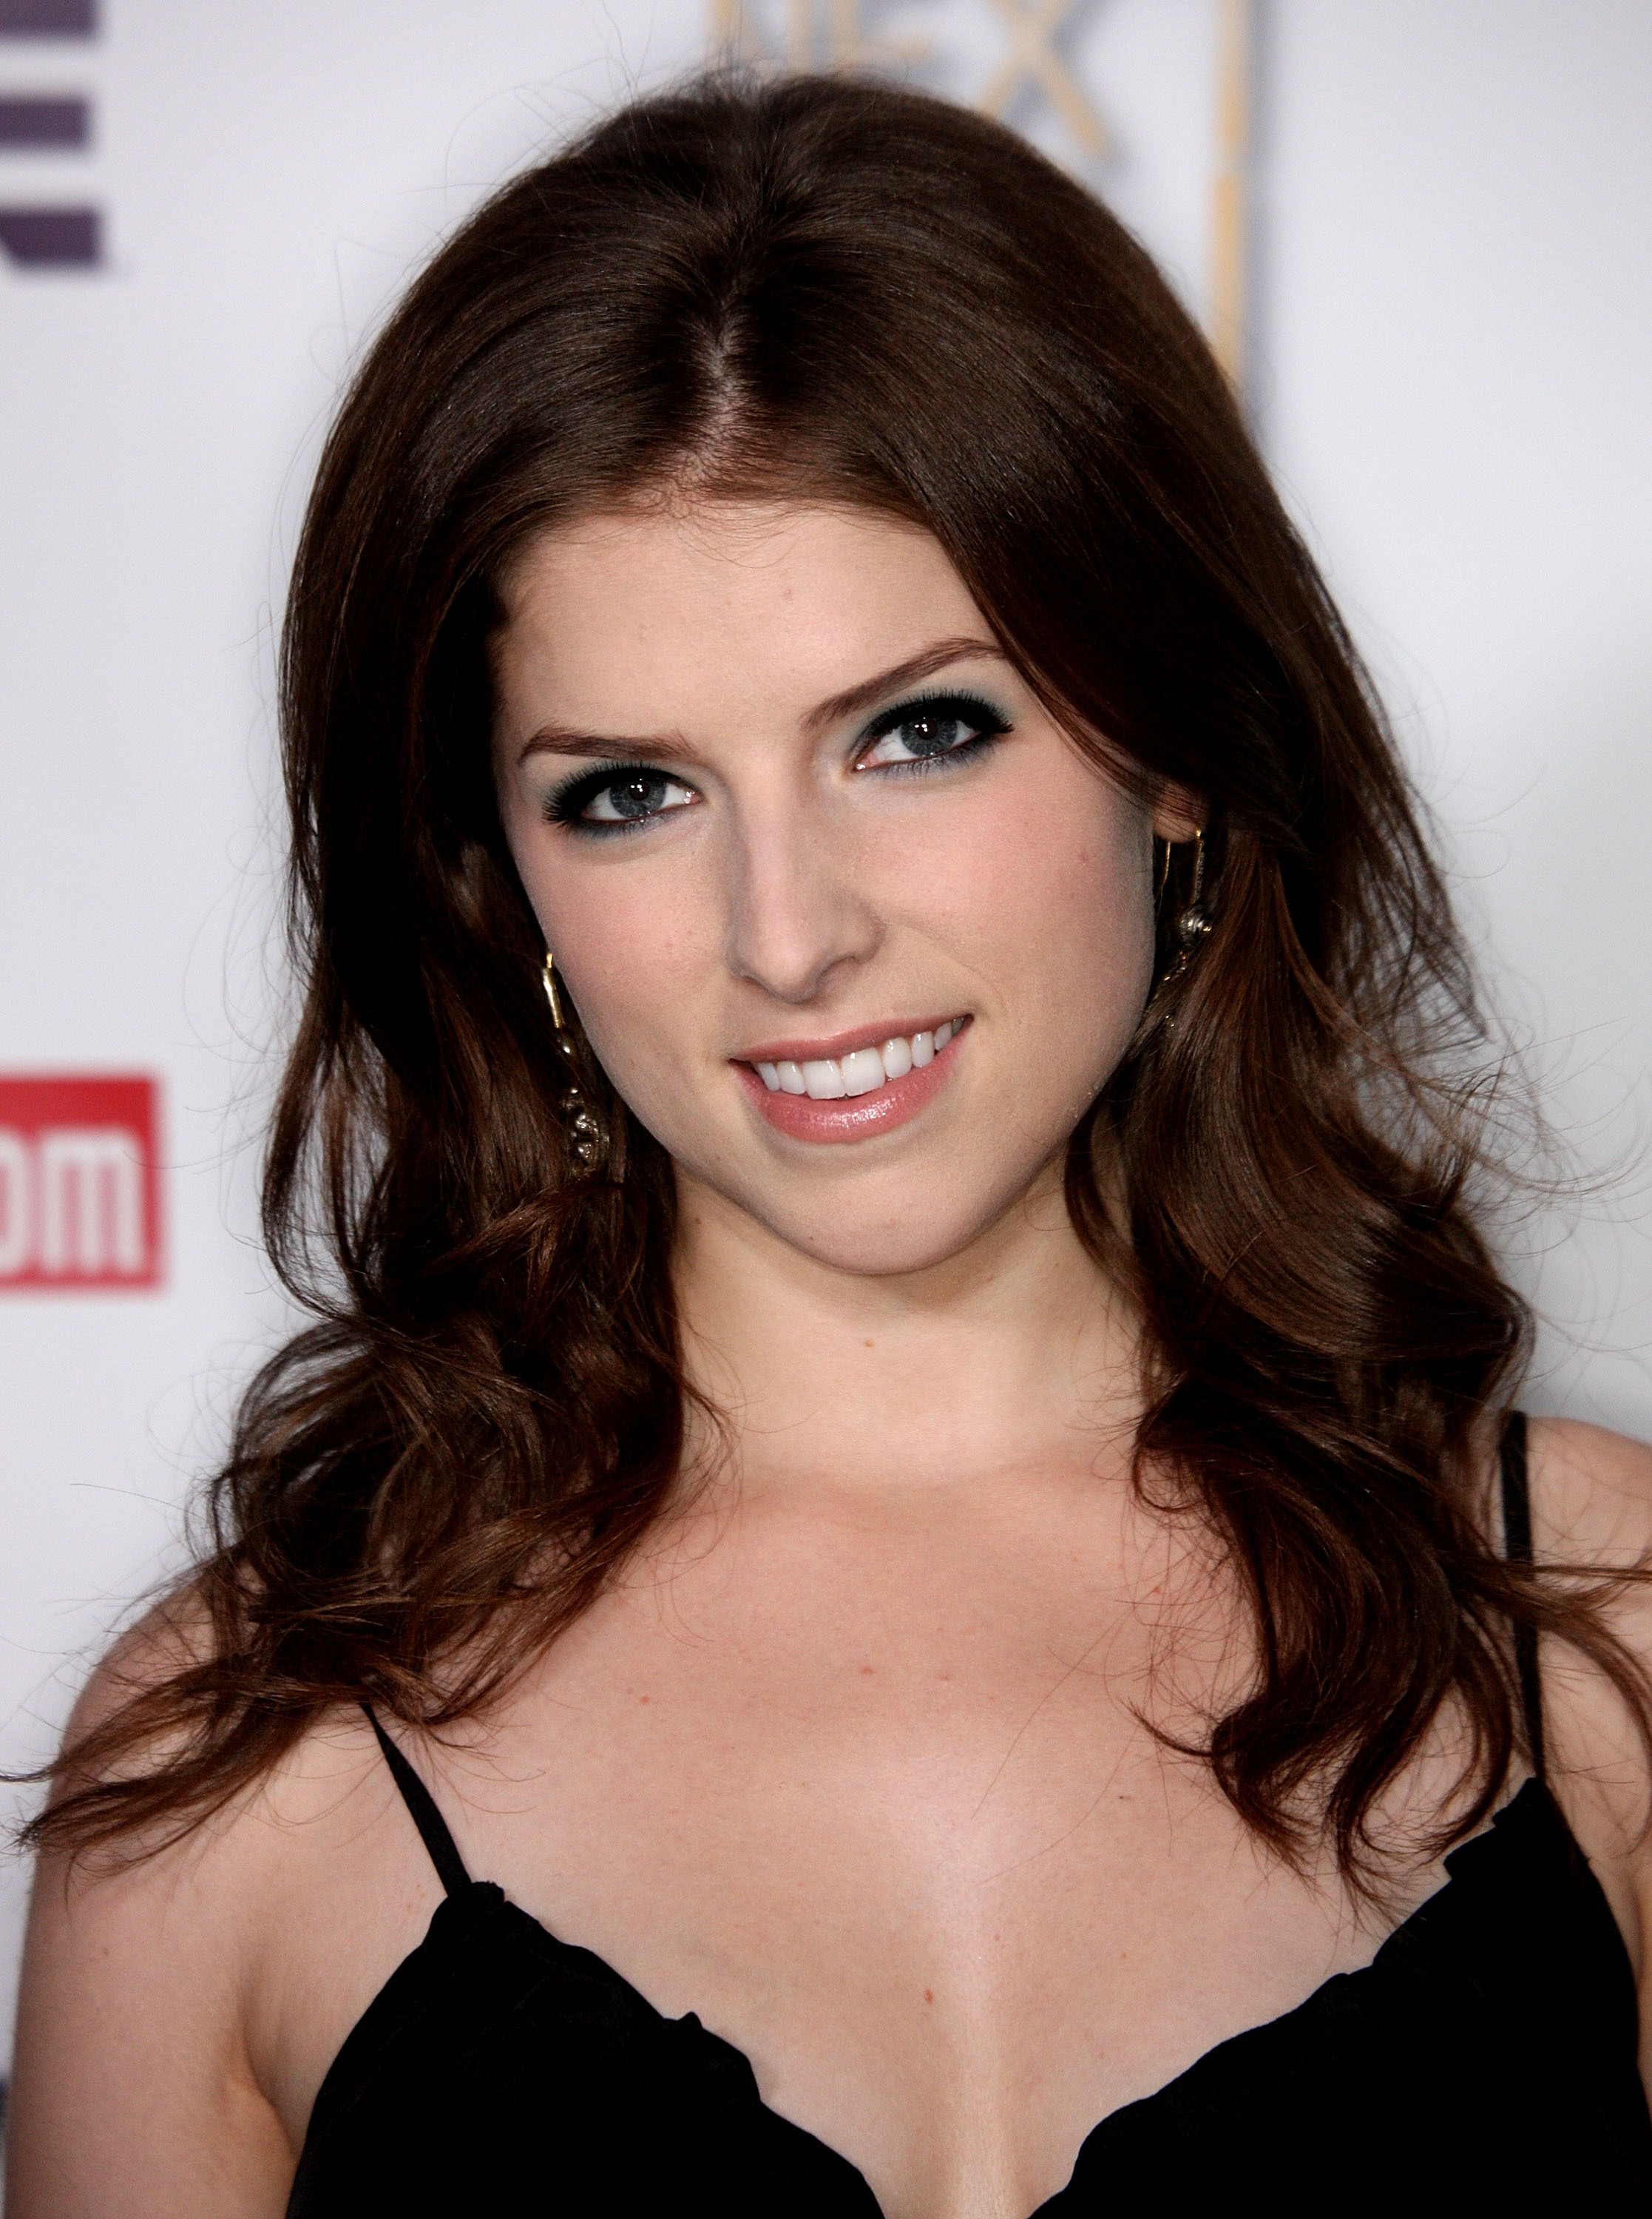 cleavage Images Anna Kendrick naked photo 2017